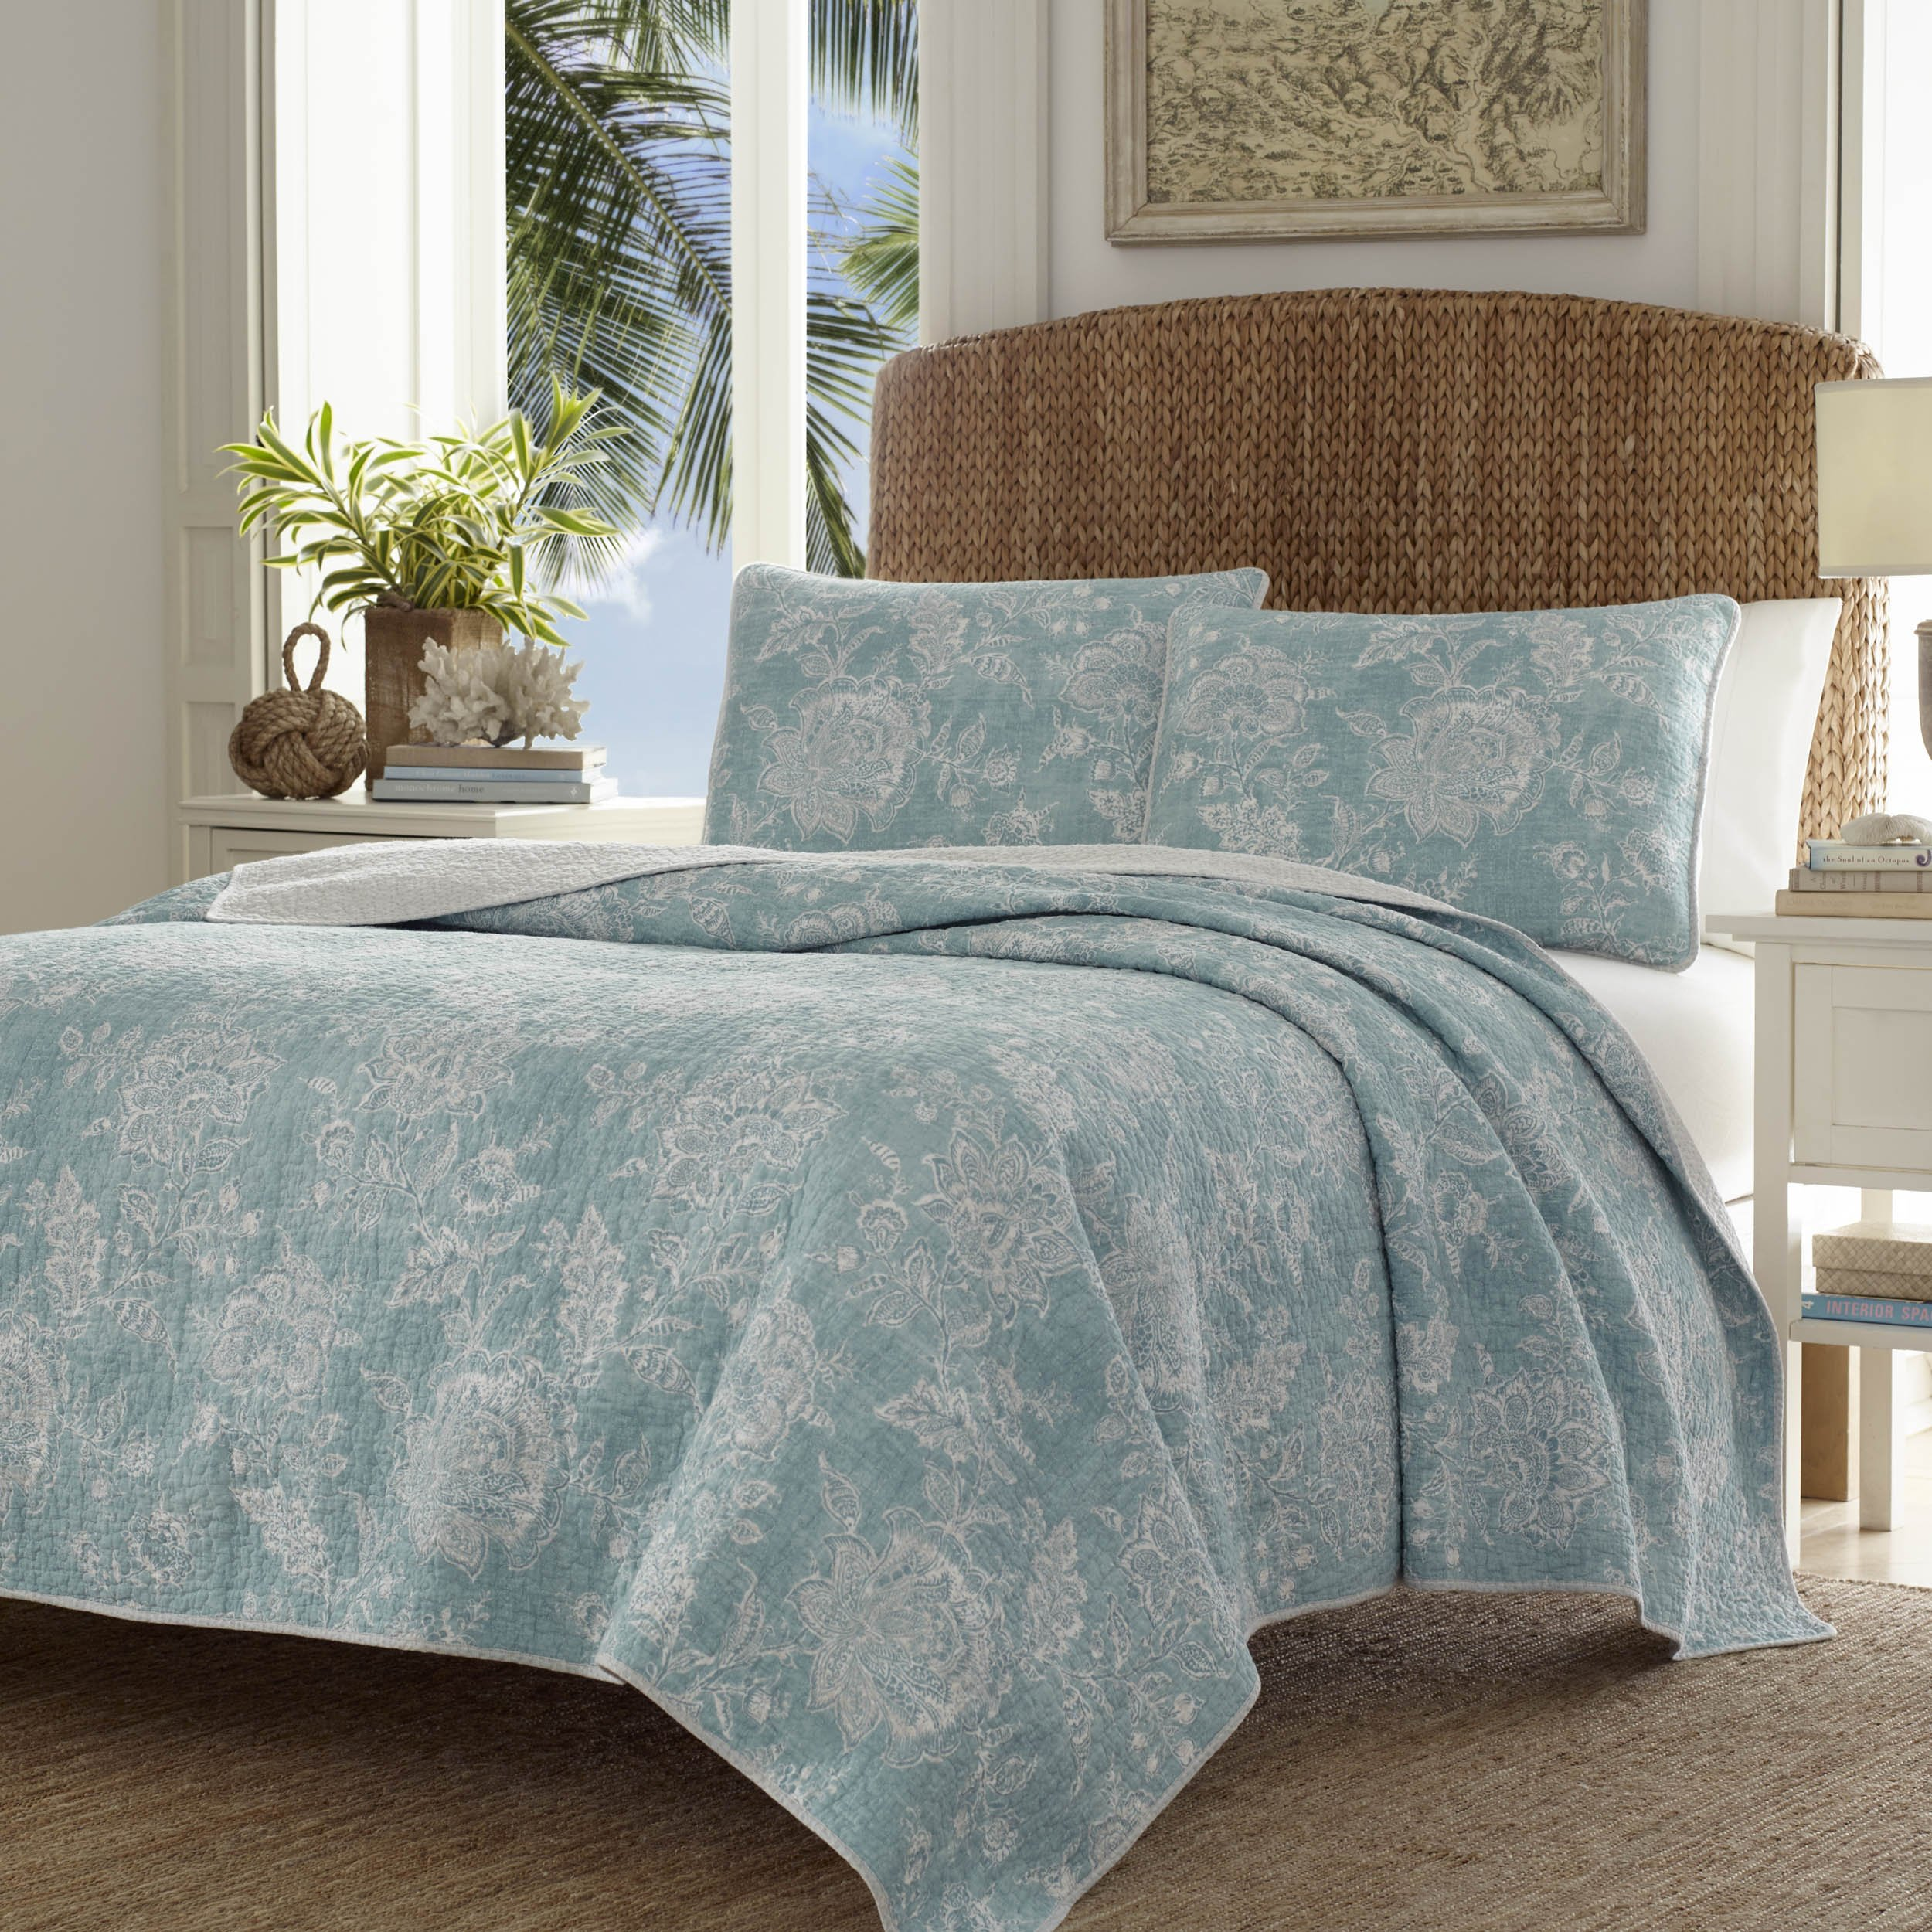 Tommy Bahama 220120 Tidewater Jacobean Reversible Quilt Set, King, Blue/Green